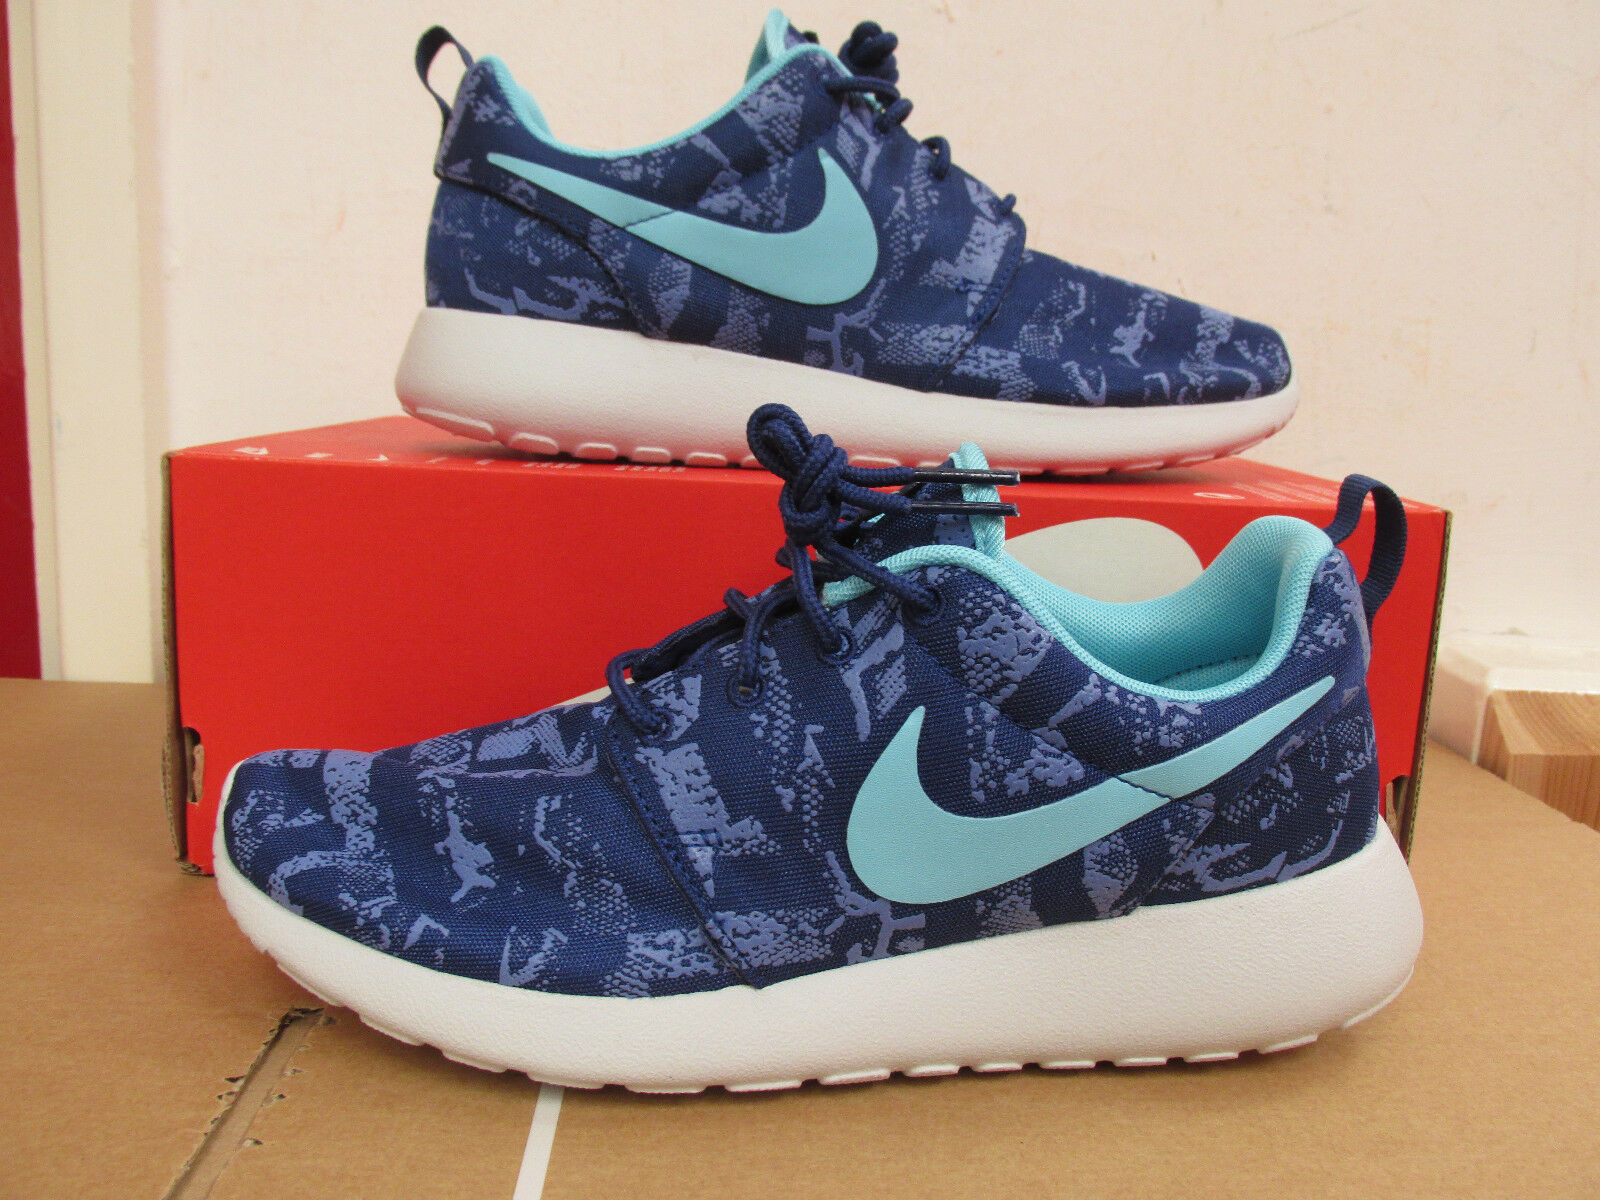 Nike Womens Roshe One Print Running Trainers 599432 440 shoes sneakers CLEARANCE